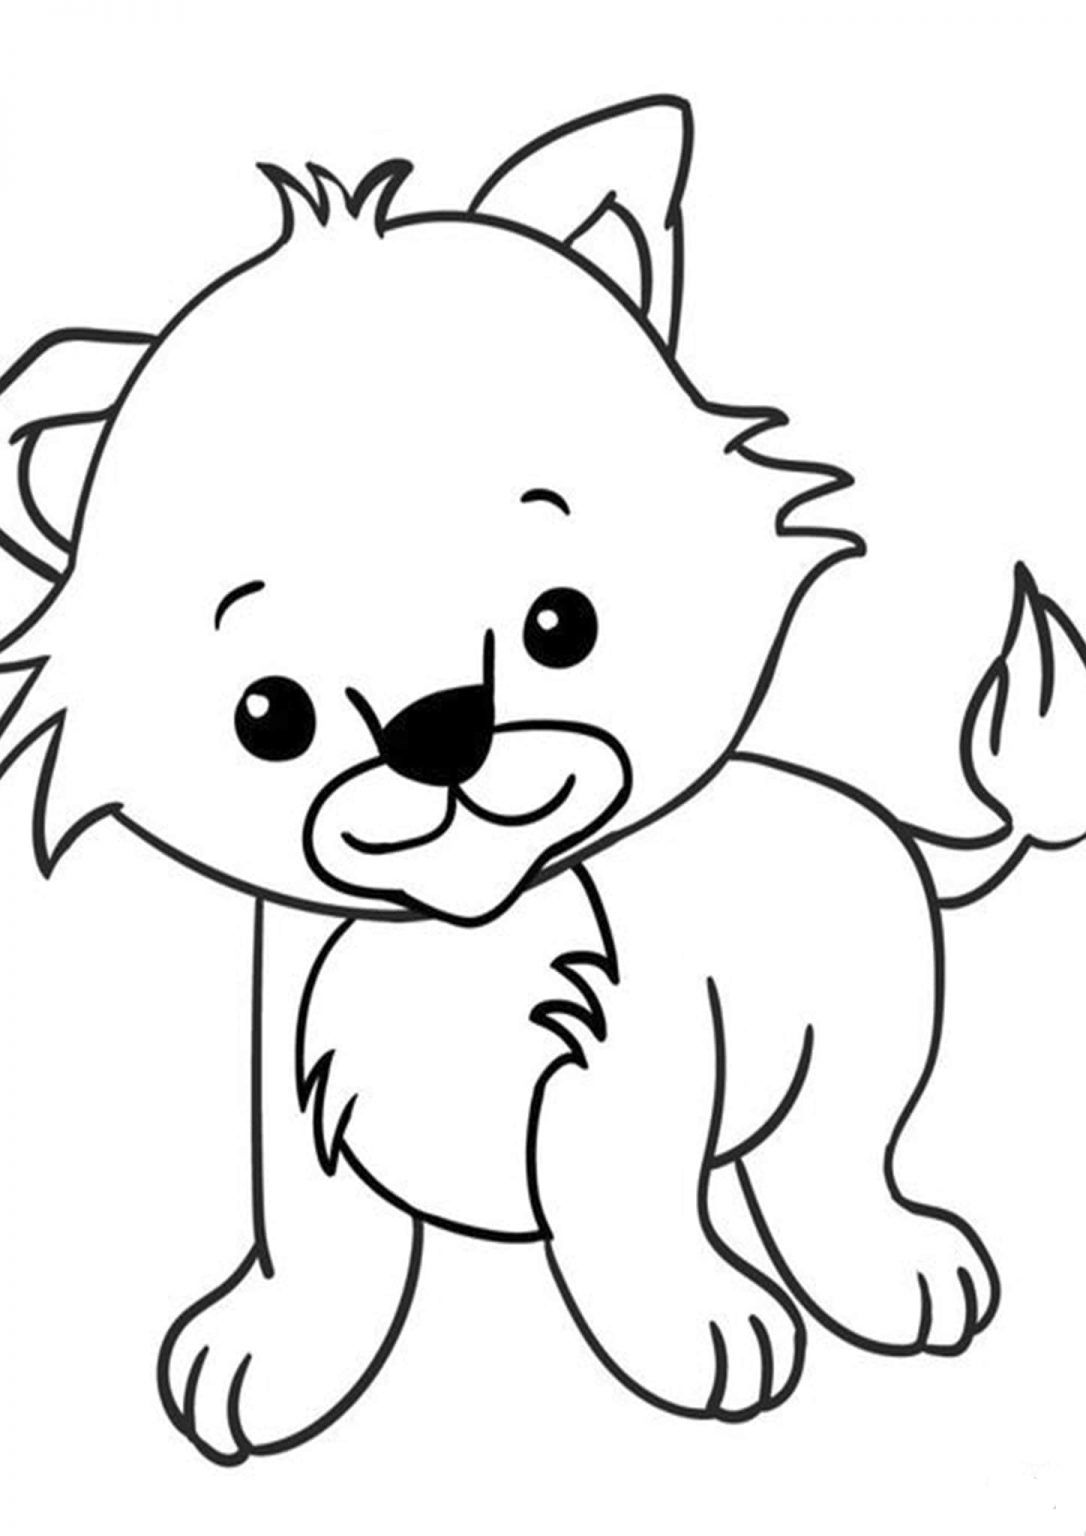 Free Easy To Print Baby Animal Coloring Pages Farm Animal Coloring Pages Animal Coloring Pages Dinosaur Coloring Pages